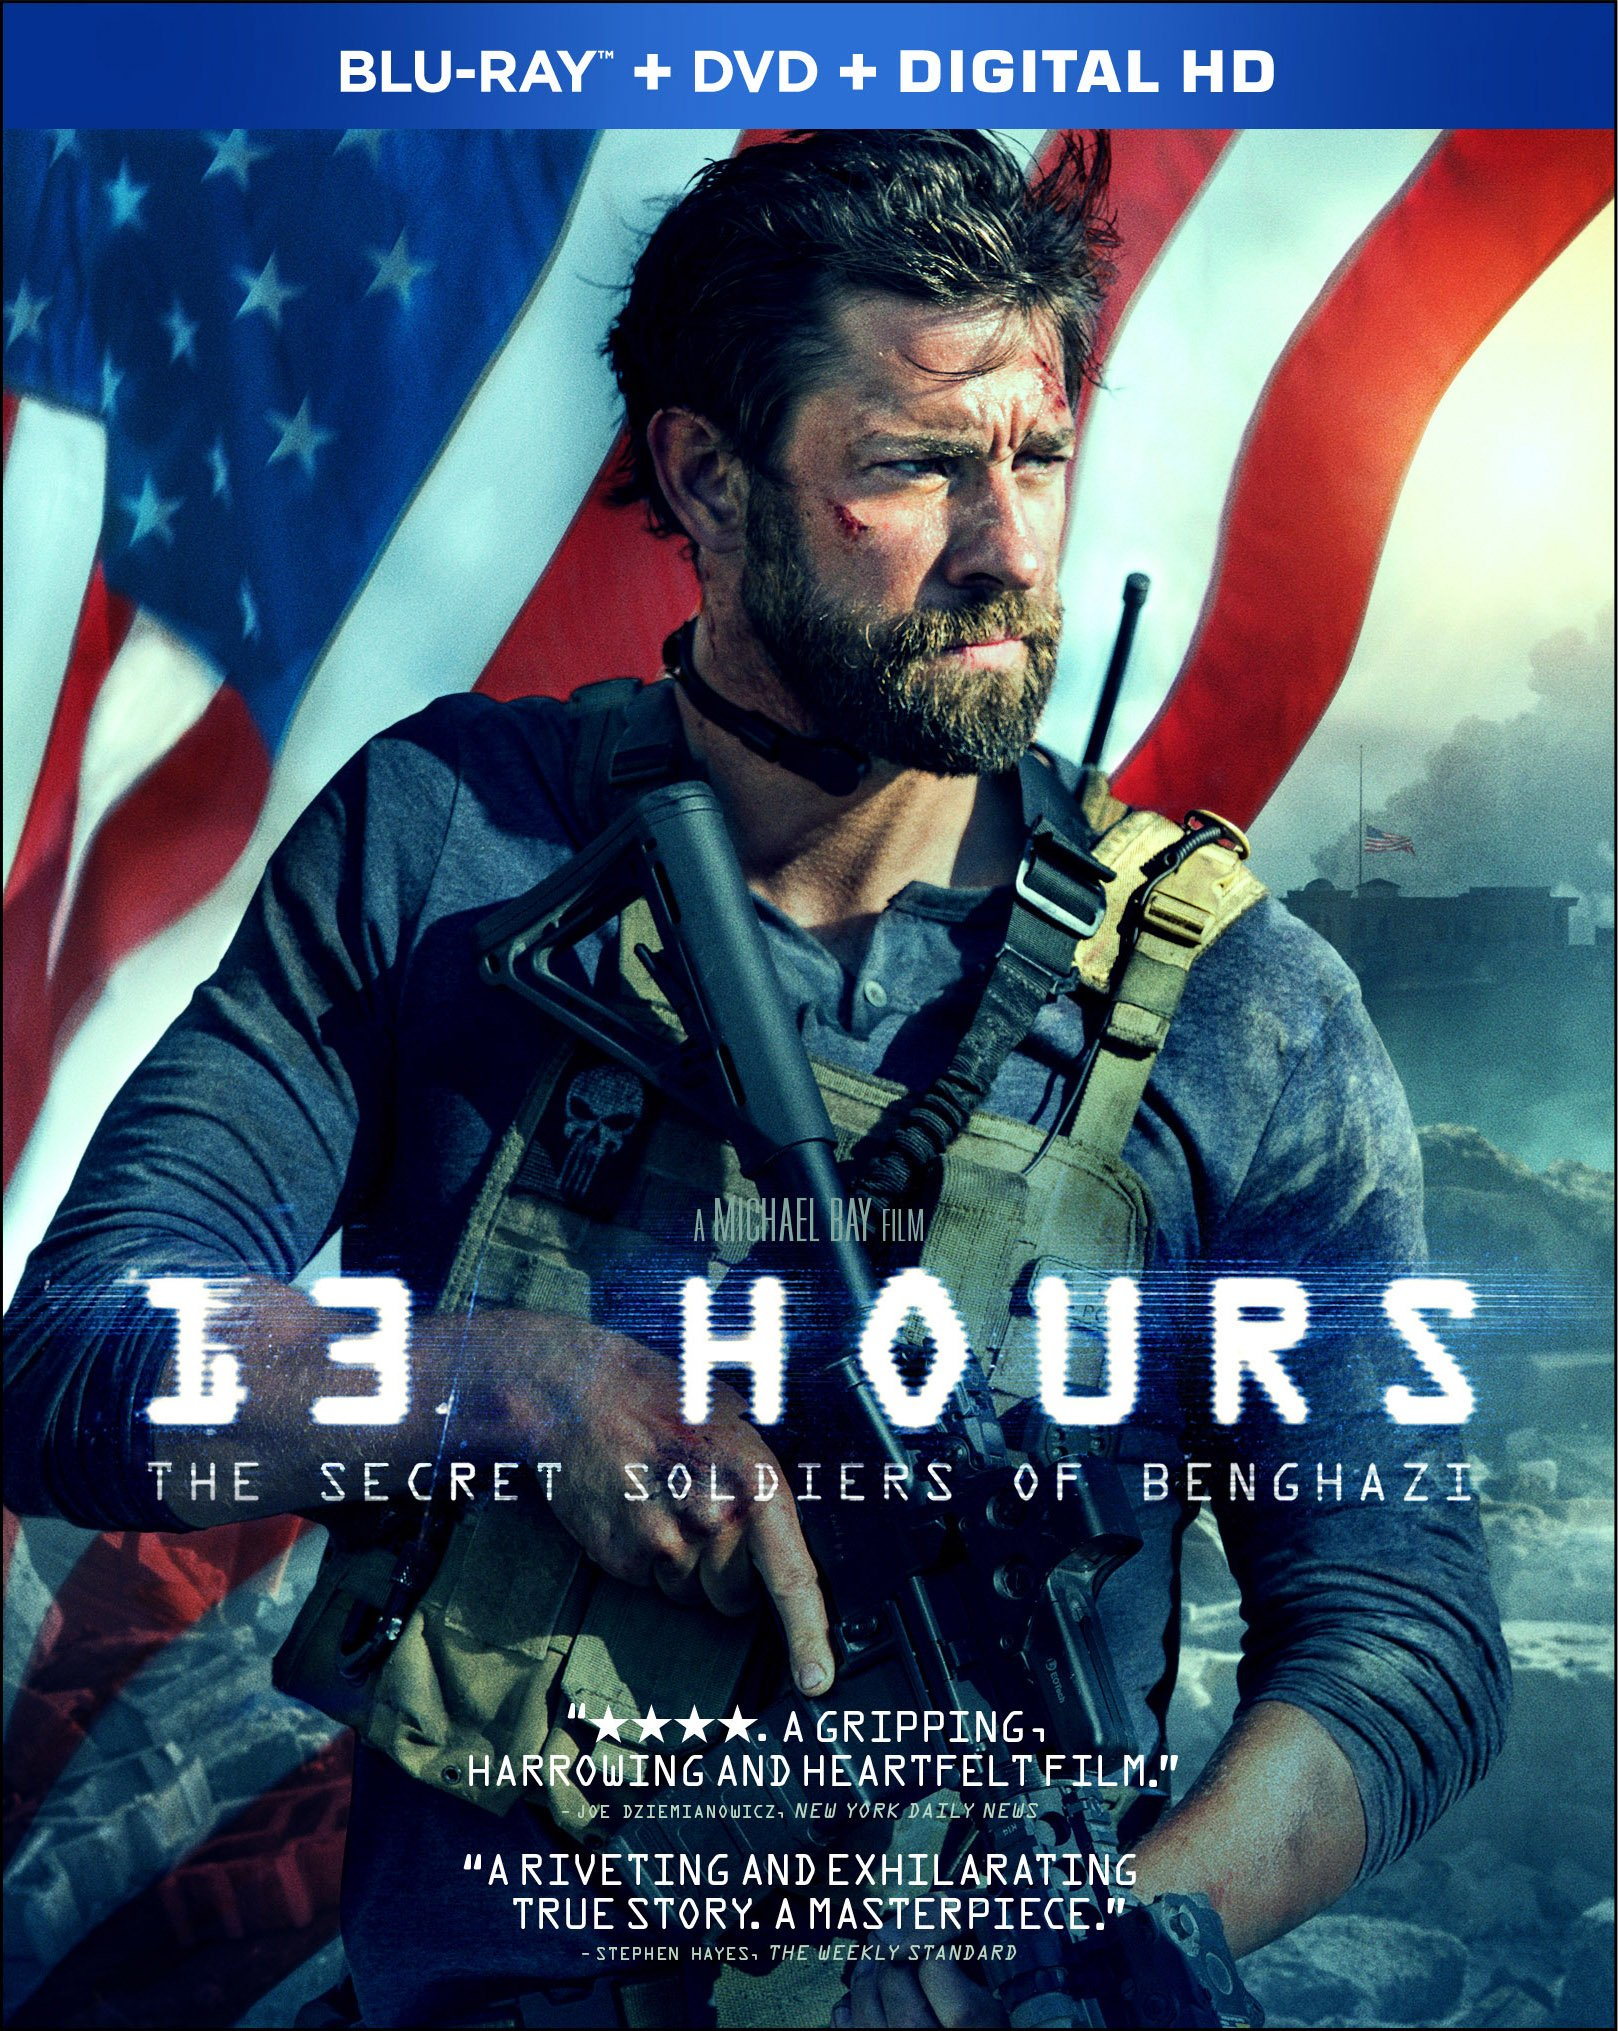 Blu-ray : 13 Hours: The Secret Soldiers of Benghazi (With DVD, 2 Pack, Digitally Mastered in HD, 2 Disc)